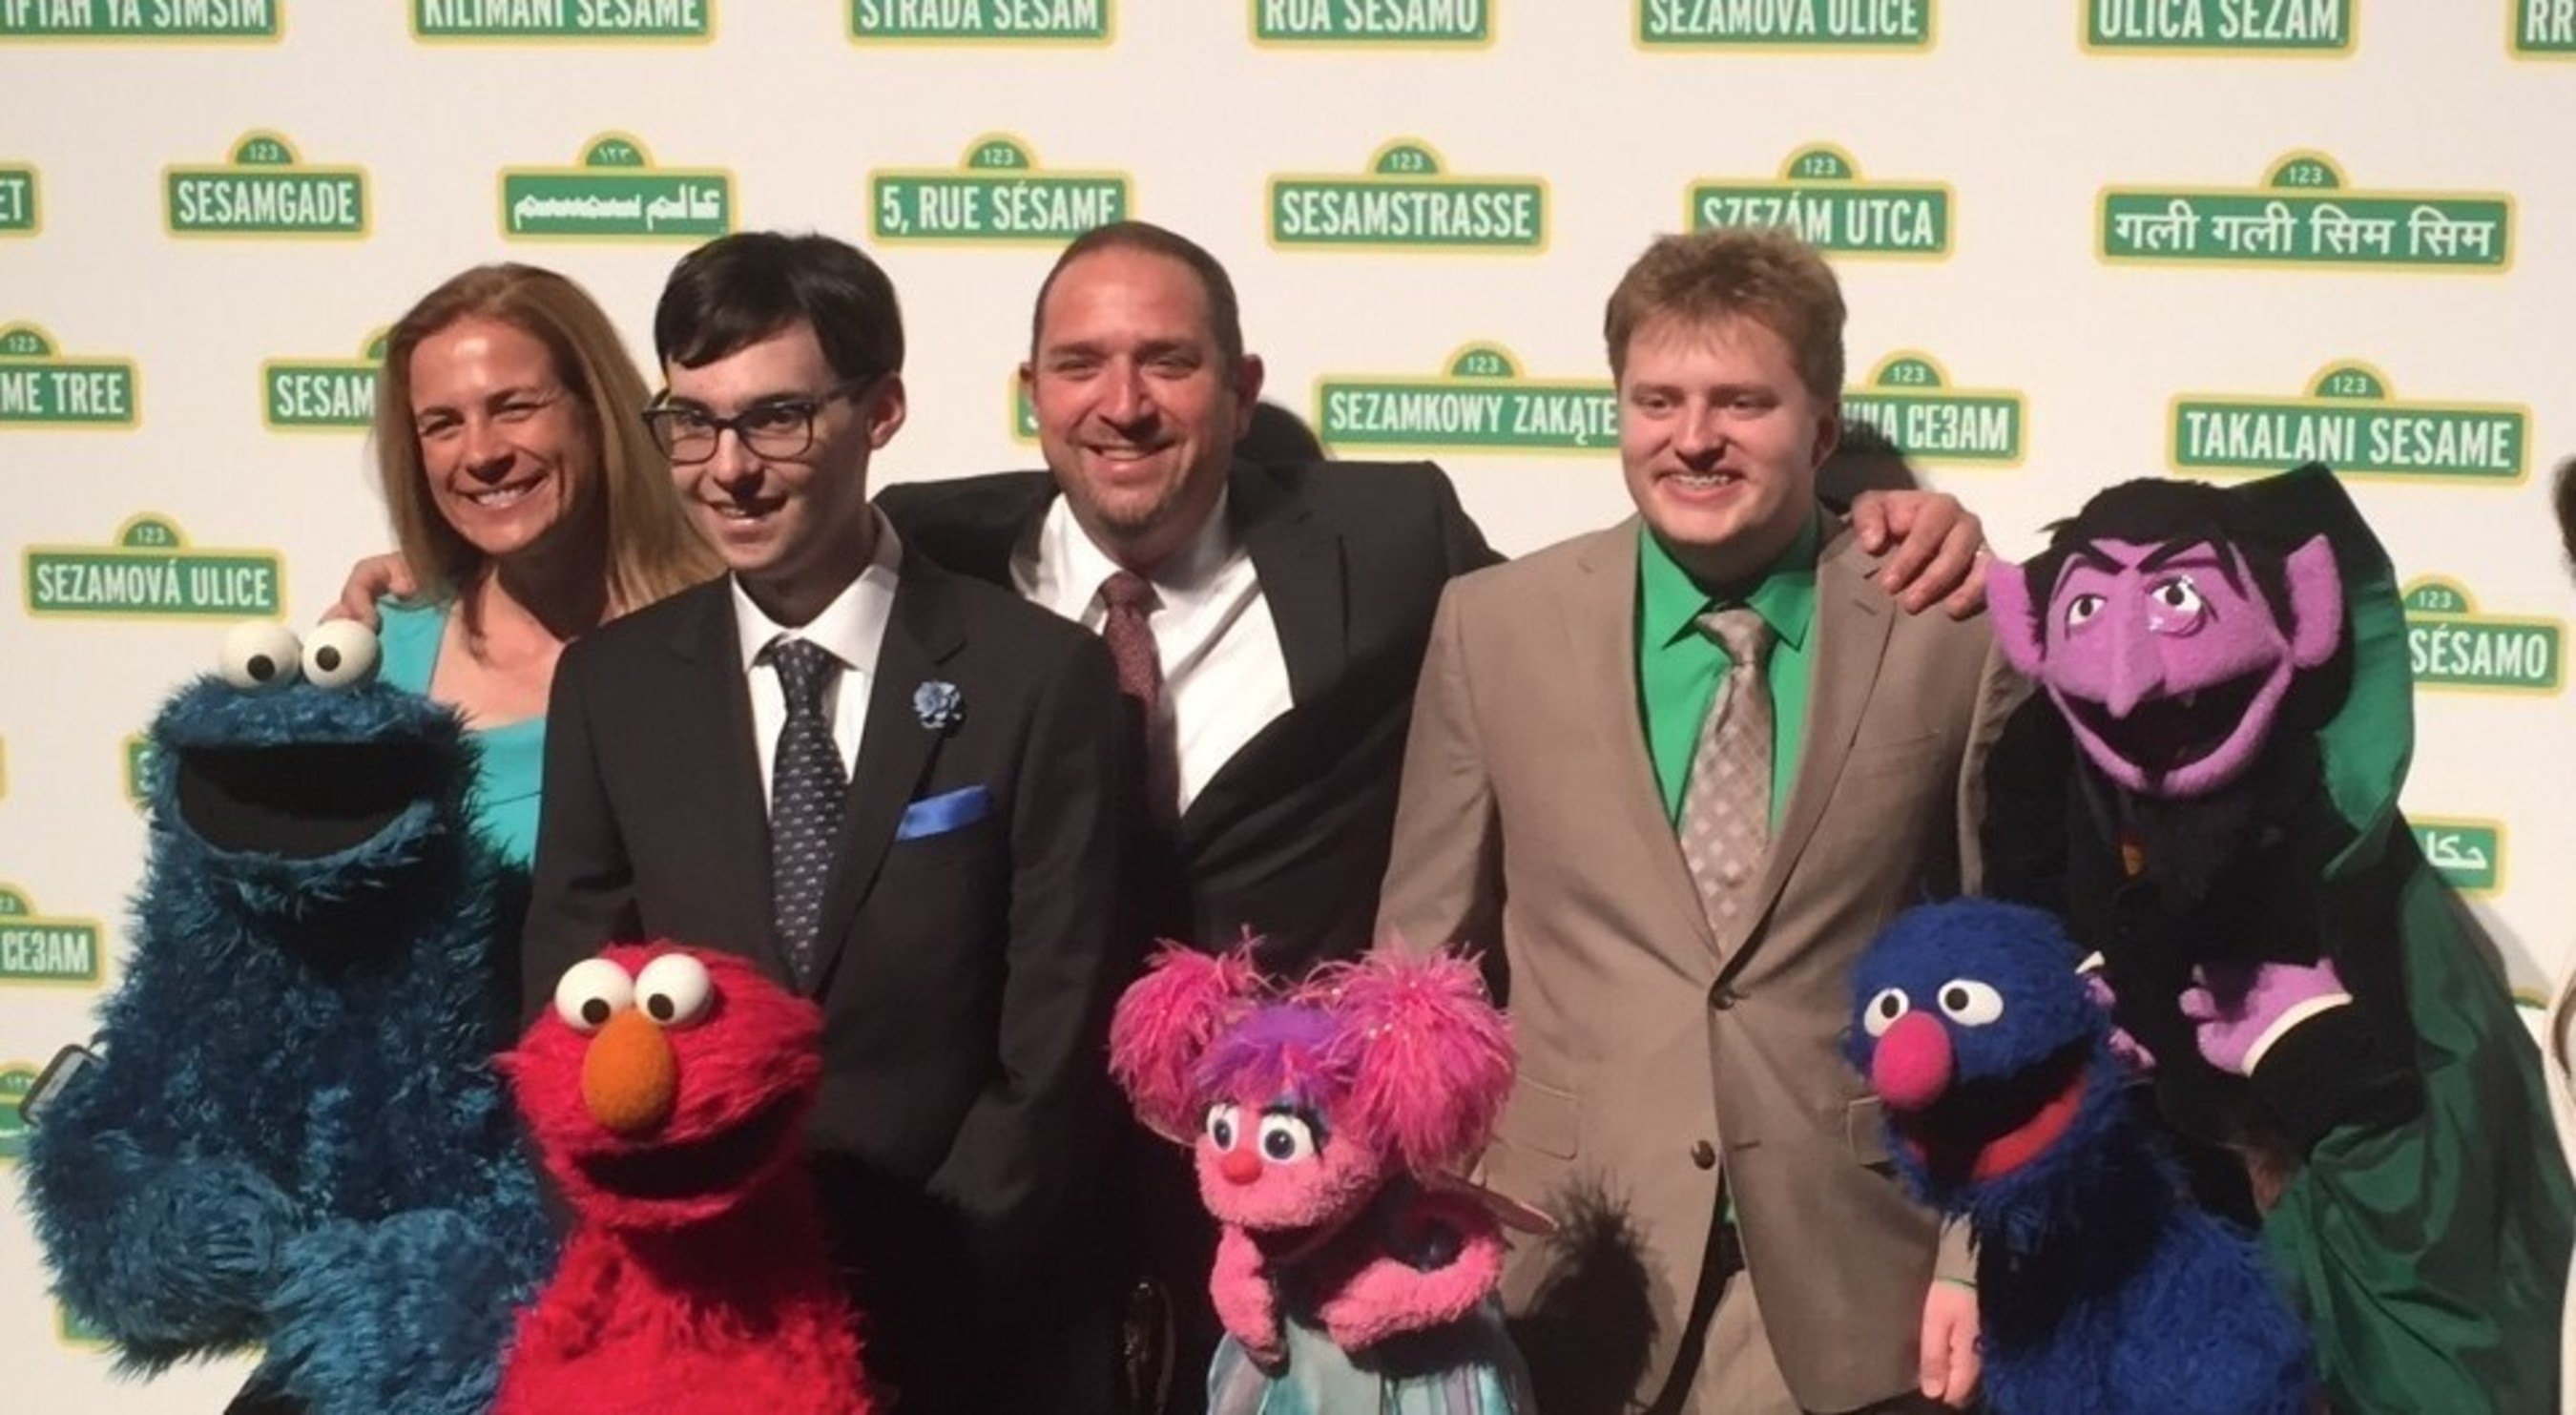 Elmo, Abby Cadabby, Cookie, Grover and the friends at Sesame Street awarded the Joan Ganz Cooney award to Exceptional Minds artists, shown here at the June 1 Sesame Gala event.